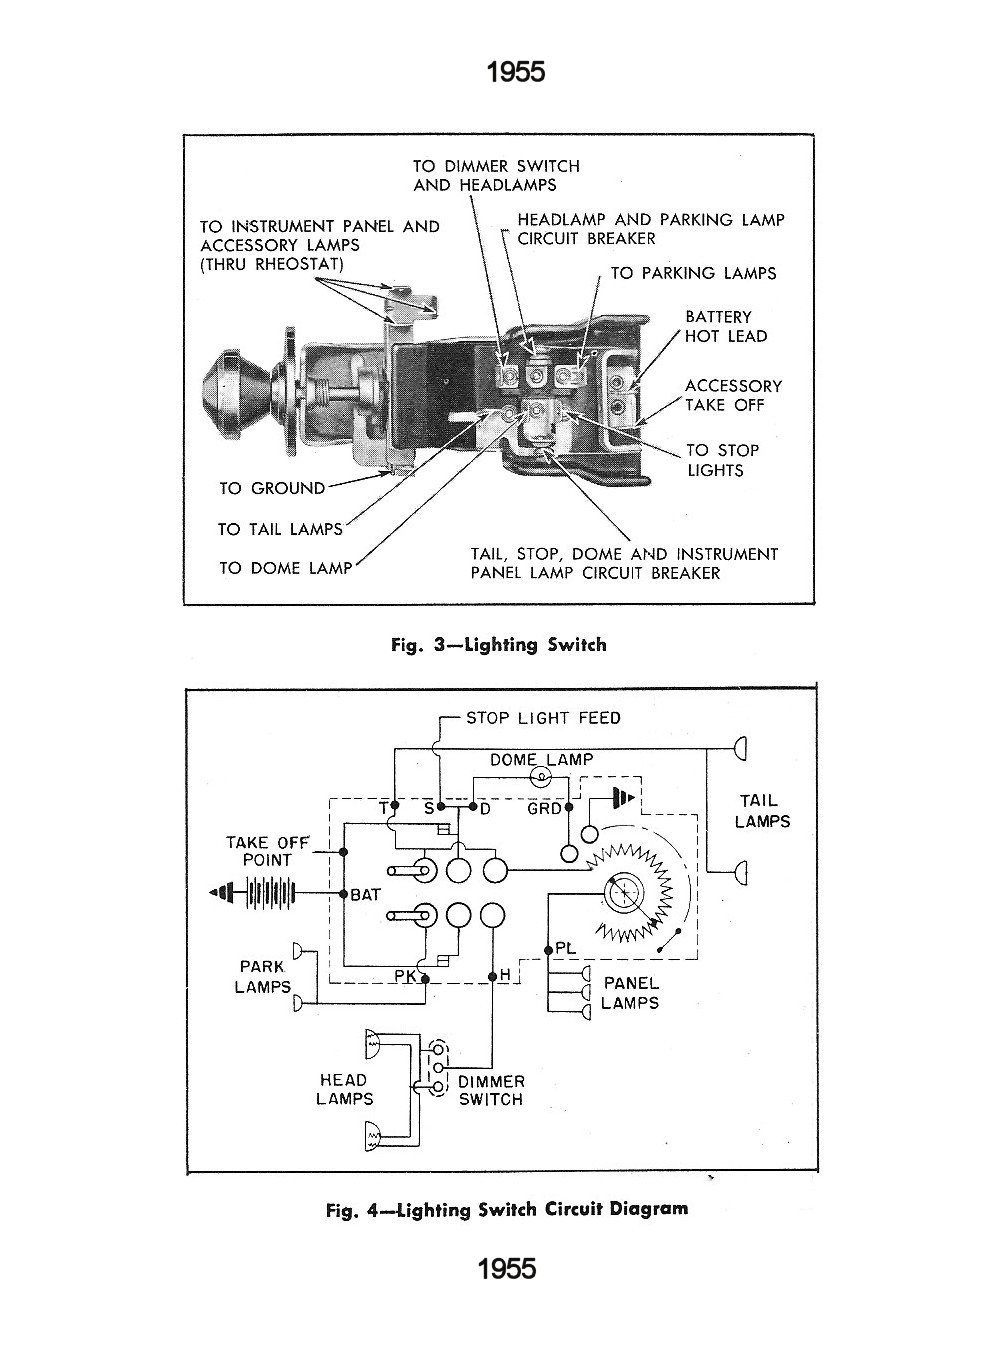 Chevy Wiring Diagrams Diagram Dimmer Switch 1955 Lighting Circuit